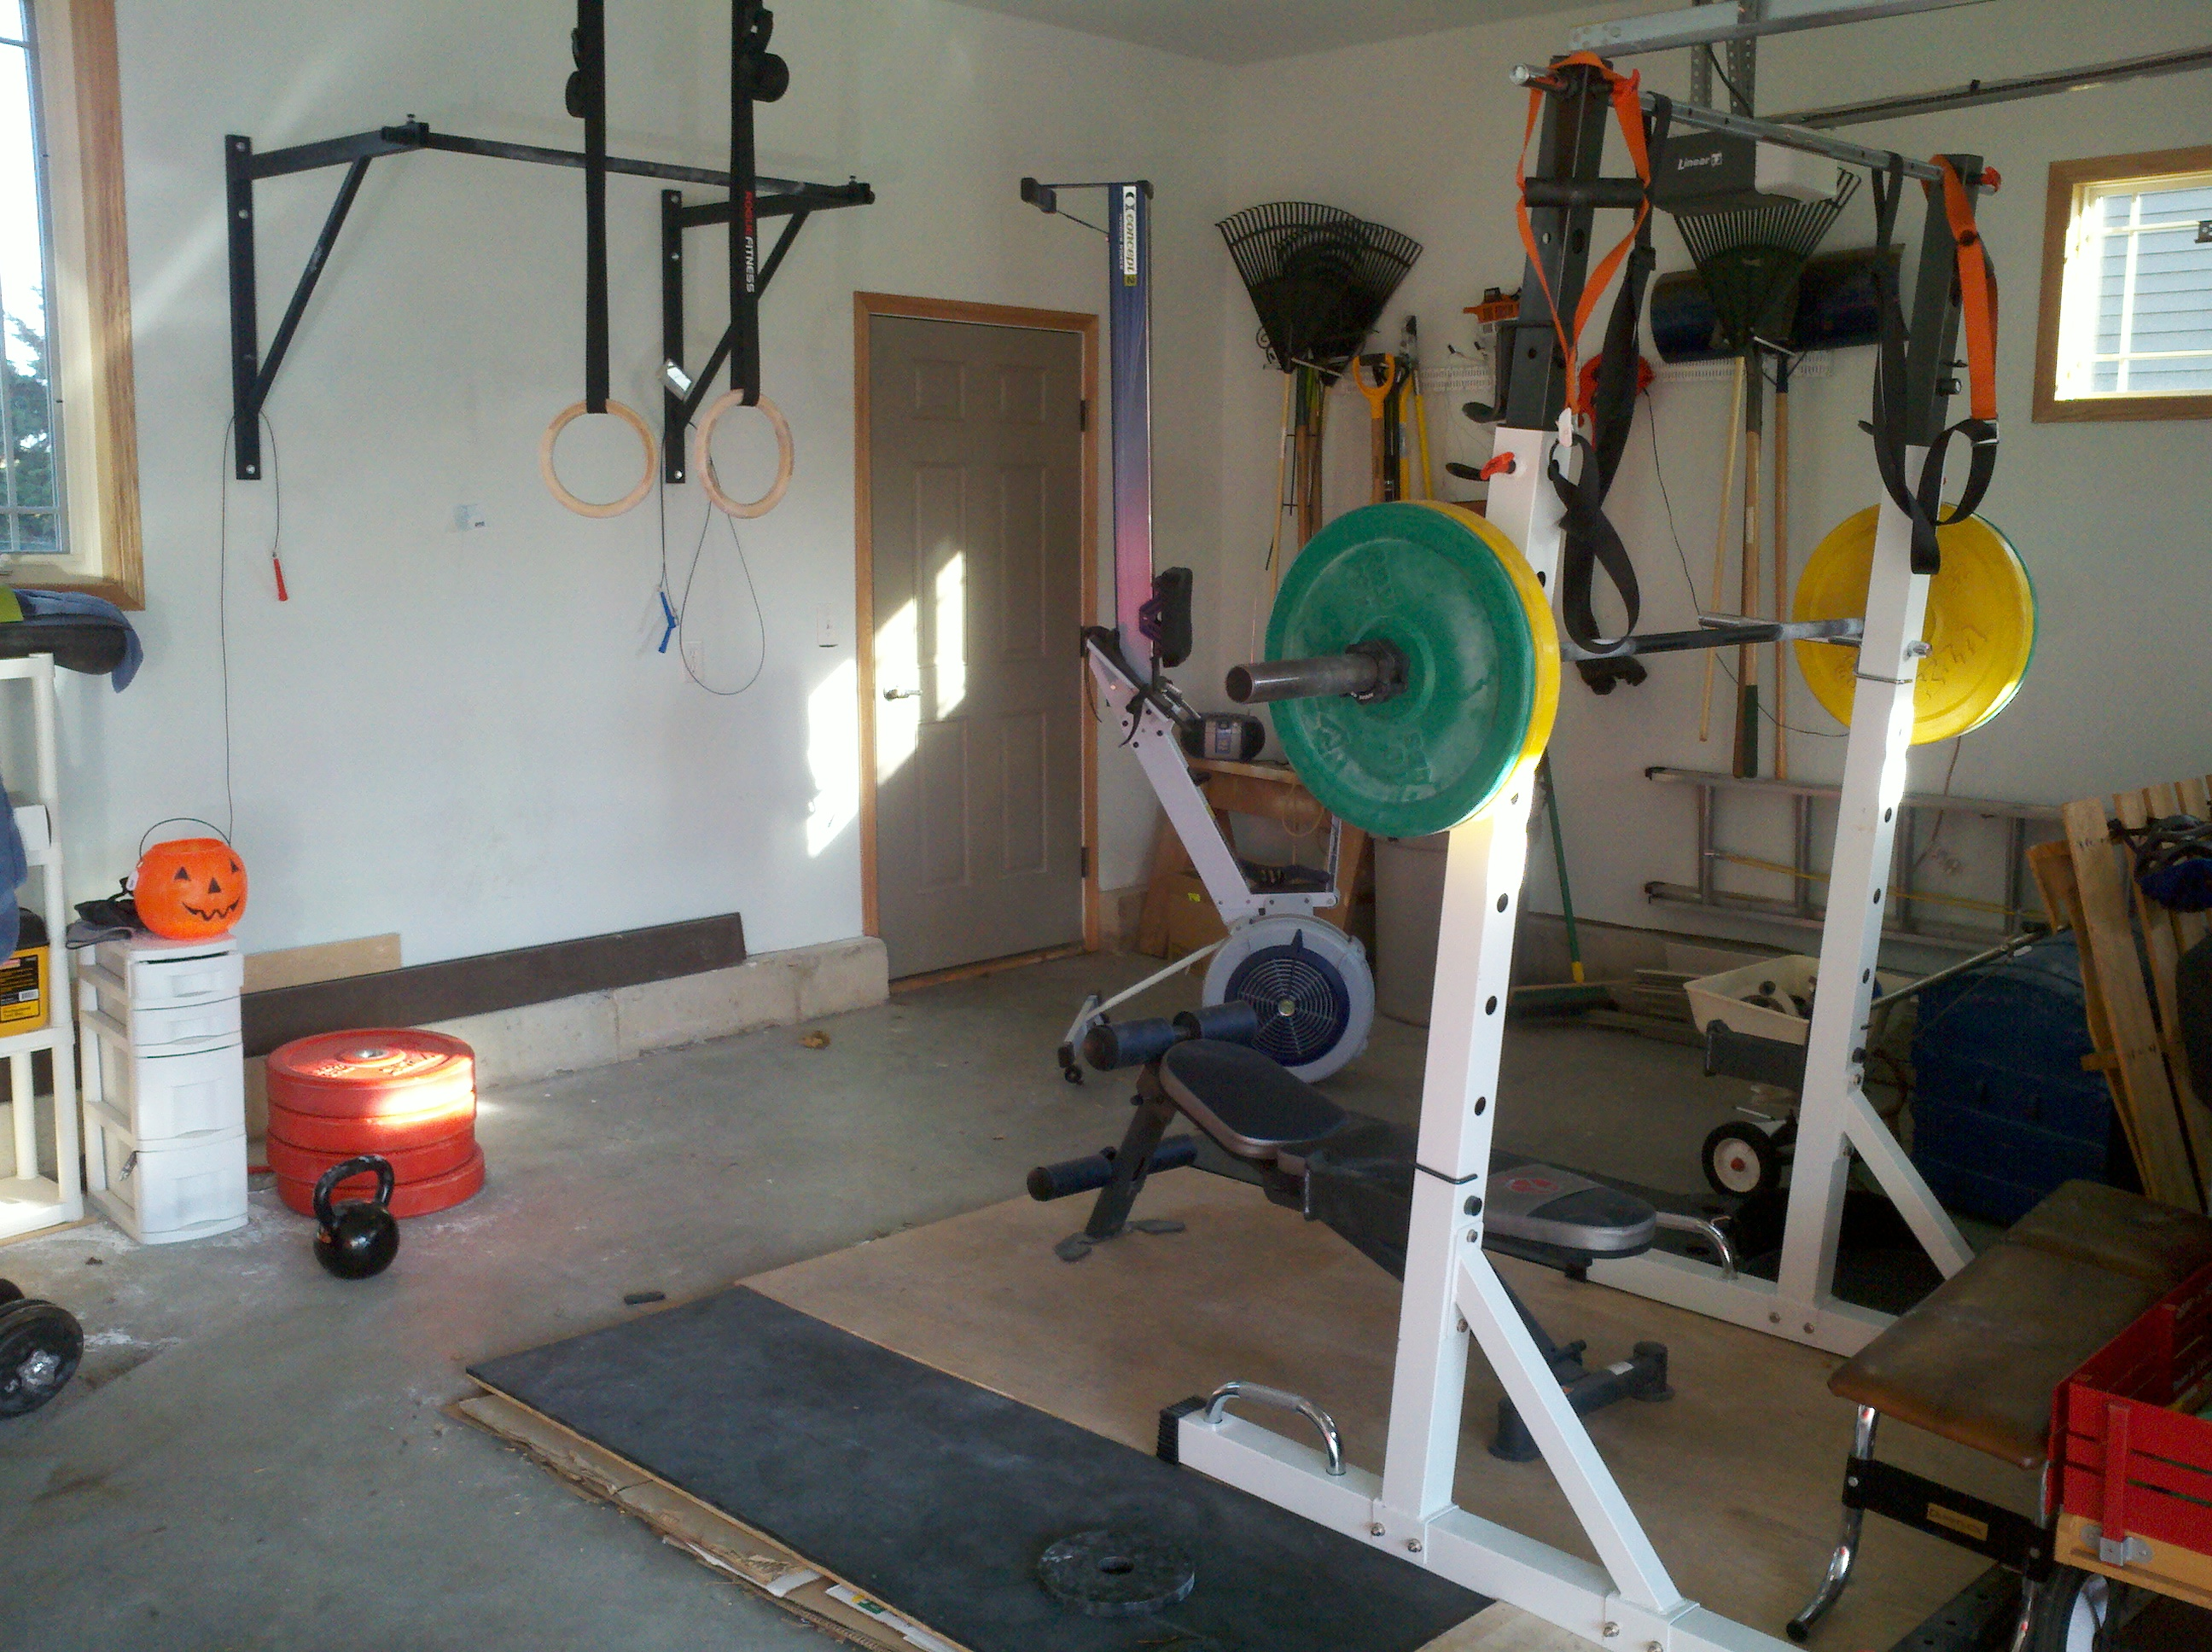 What equipment do you have for home gym rosstraining